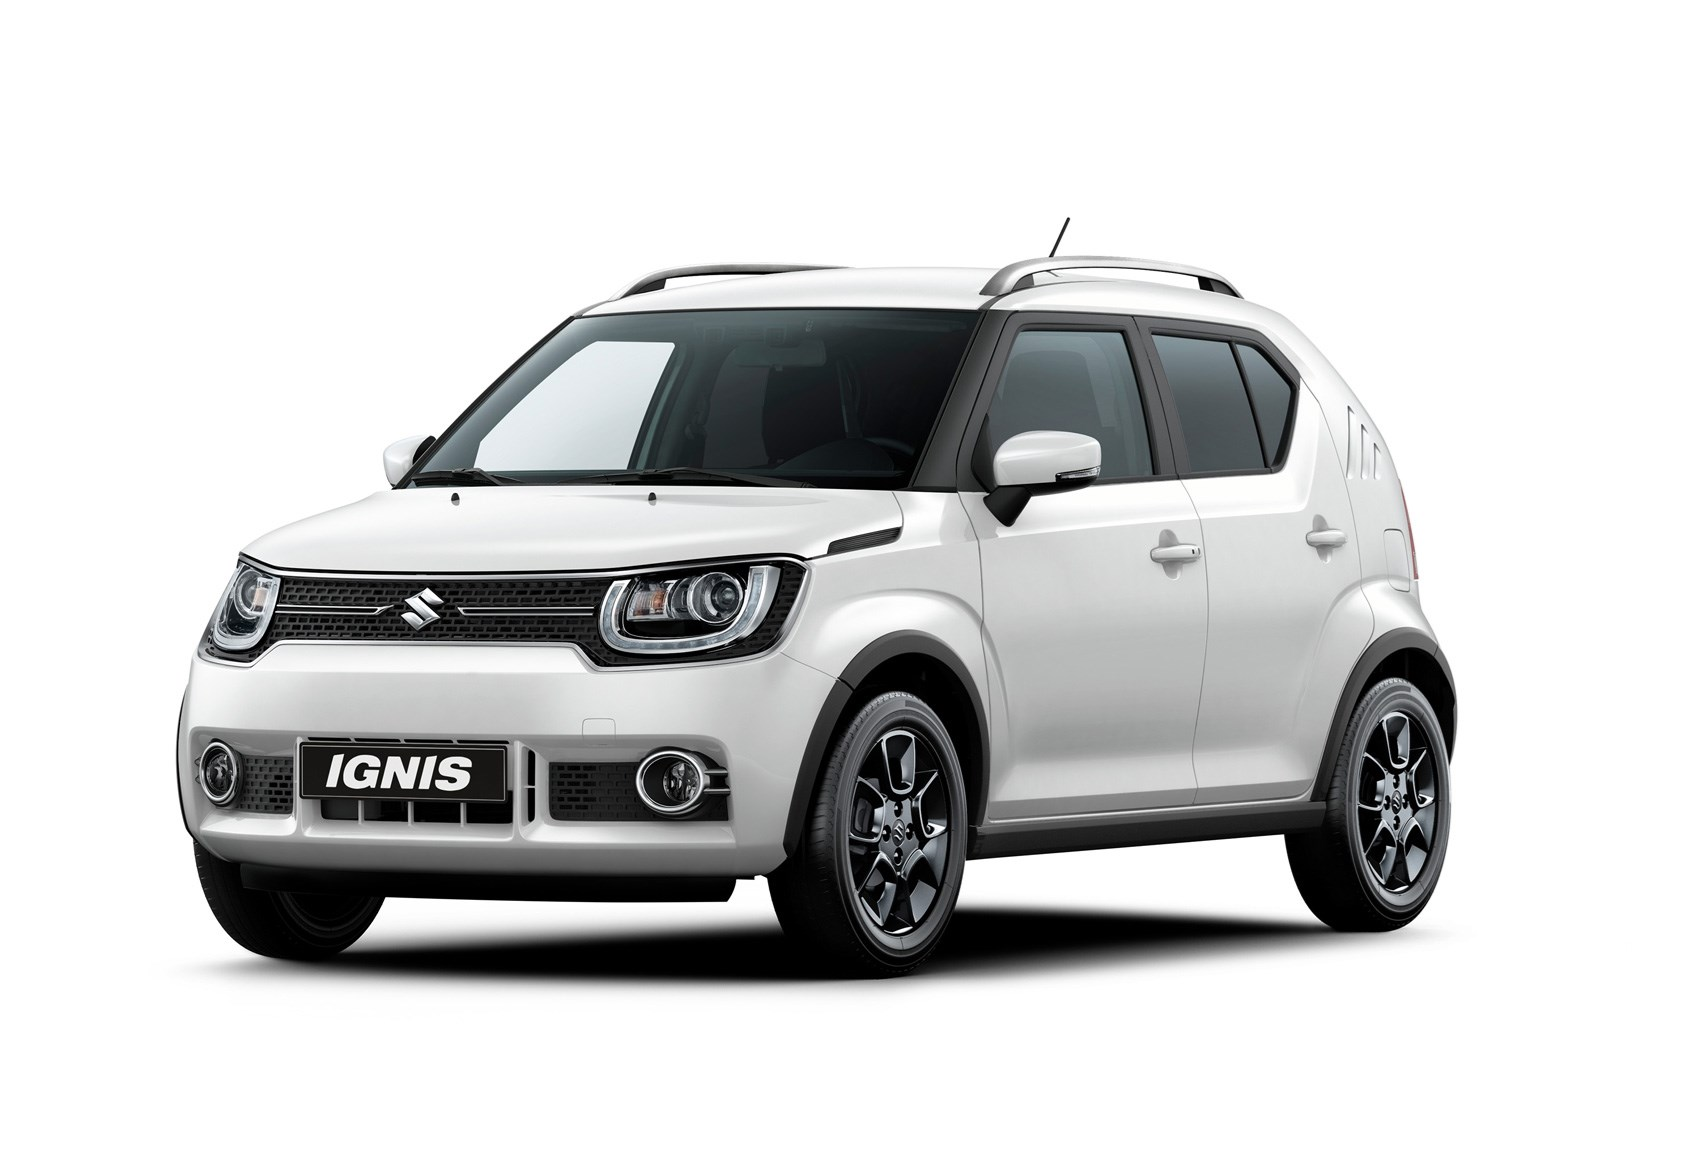 suzuki ignis pumps up the crossover vibe at paris   and s cross scrubs